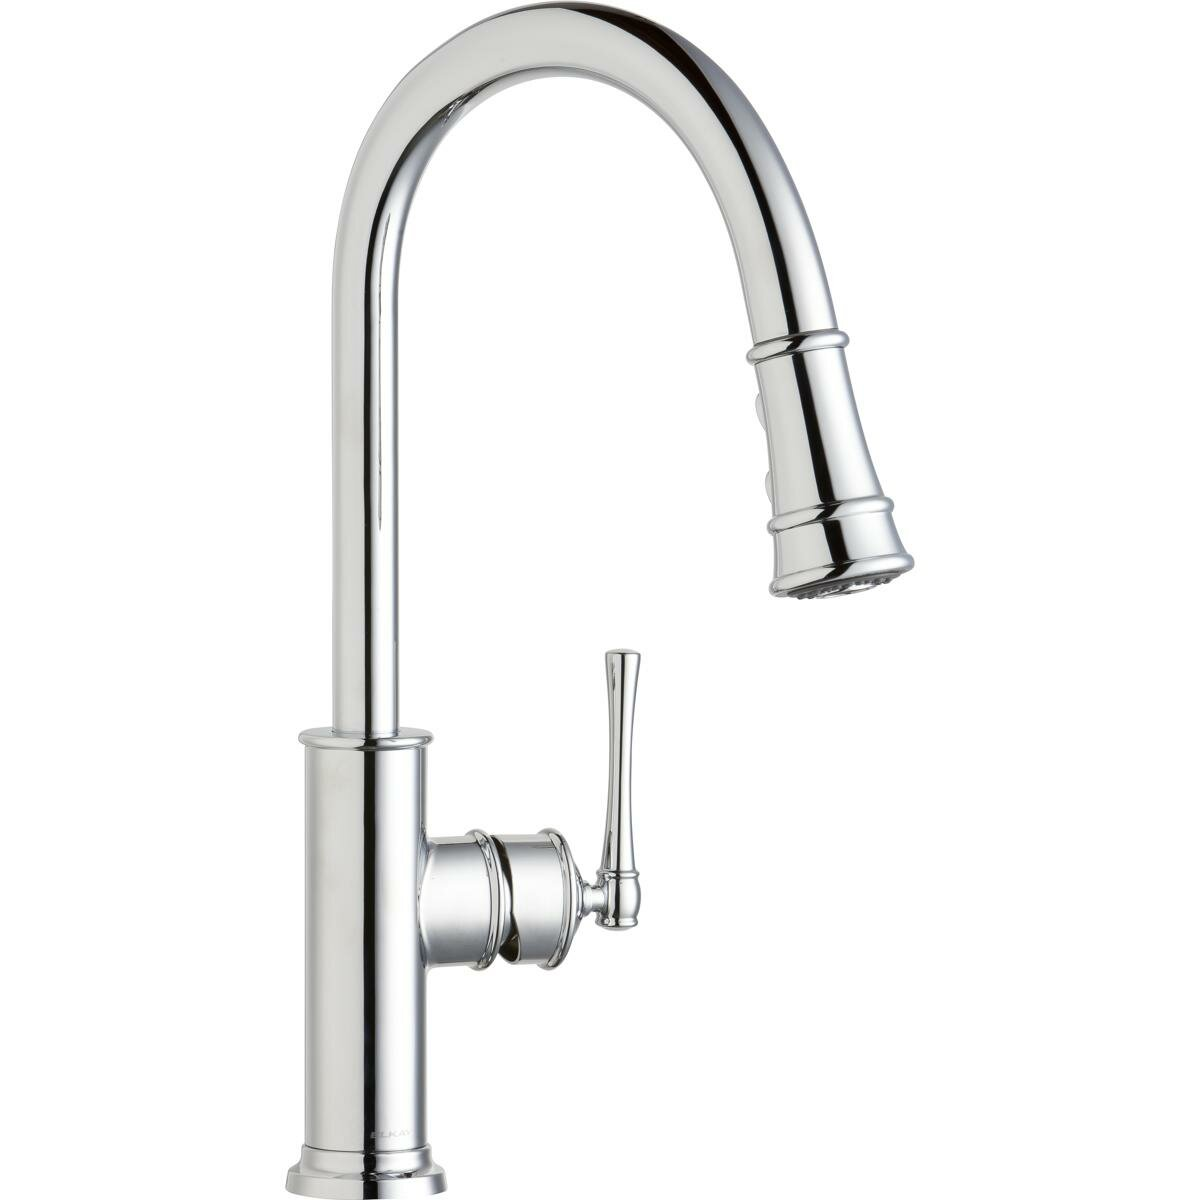 kitchen faucet spray gerber product viper with discontinued handle single plumbing